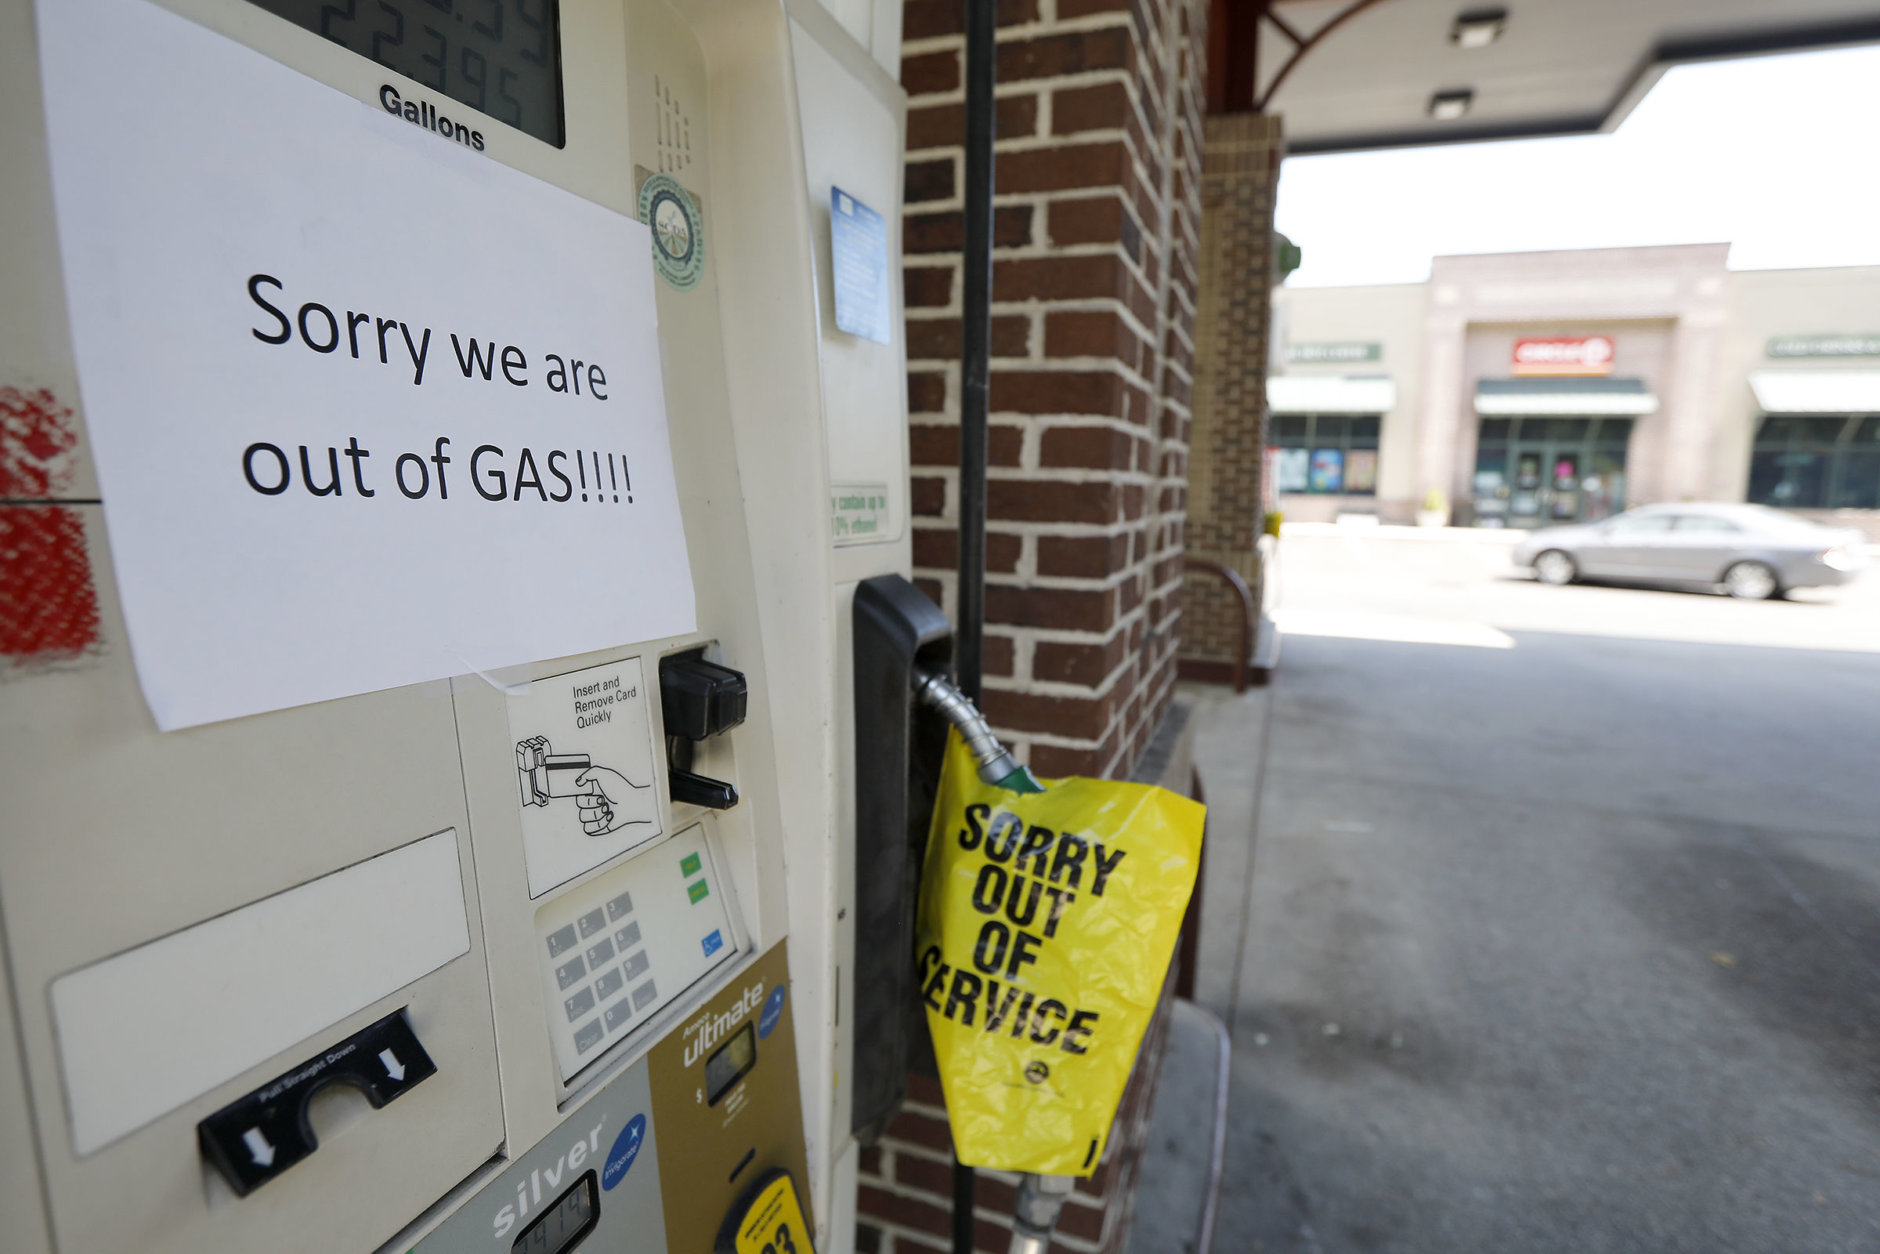 A gas station in Mt. Pleasant S.C. alerts motorist that it is out of gas due to the heavy demand caused by Hurricane Florence Tuesday, Sept. 11, 2018. (AP Photo/Mic Smith)